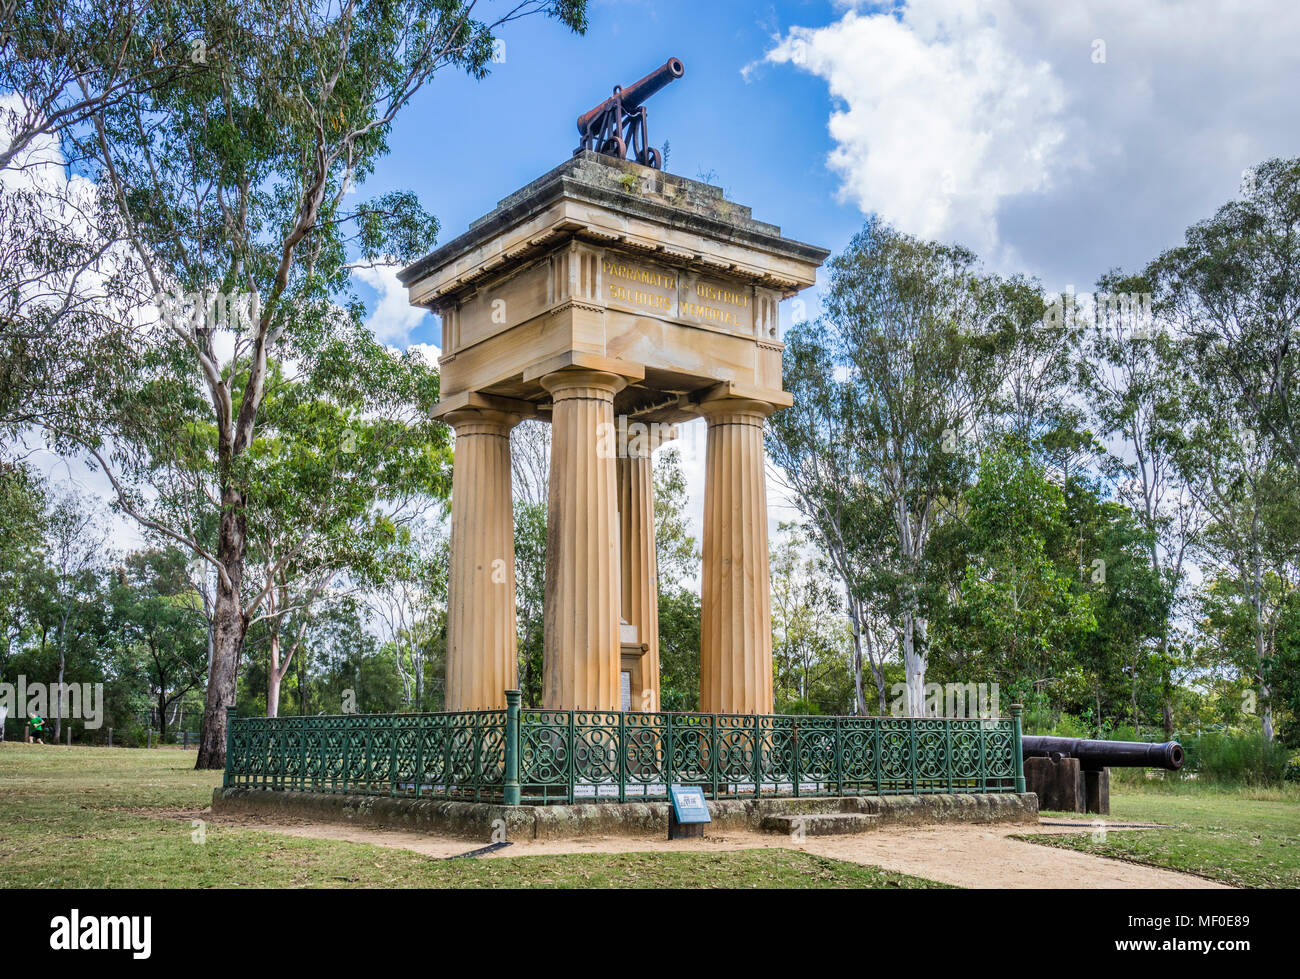 The Boer War Memorial at Parramatta Park commemorates the Parramatta Lancers' contribution to the 1899 -1902 War fought by the British Empire against  - Stock Image